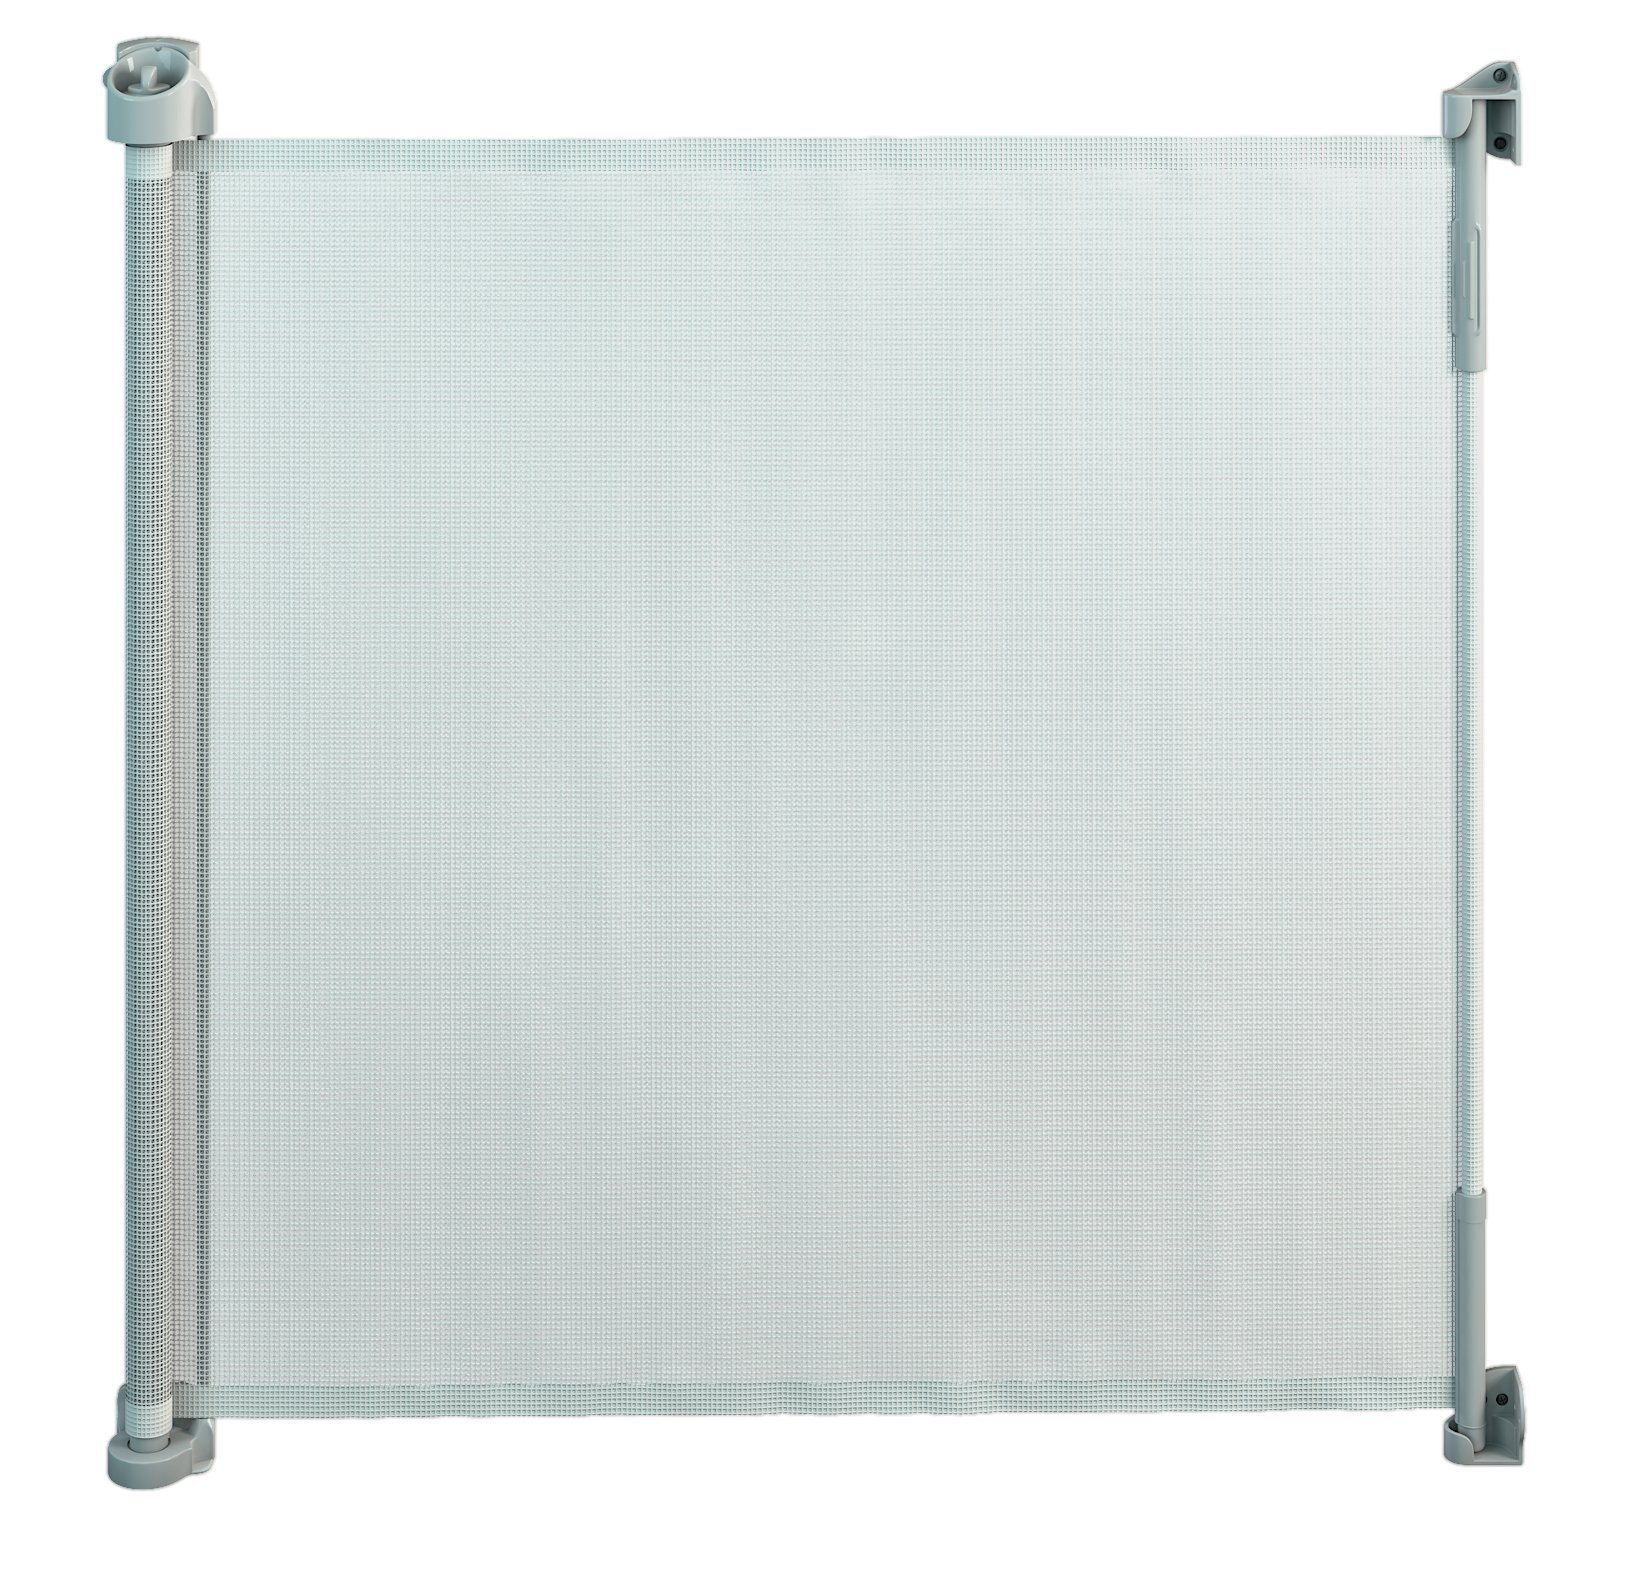 Gaterol Active Lite White - Retractable Safety Gate - Super Safe 36.6'' Tall and Opens up to 55''